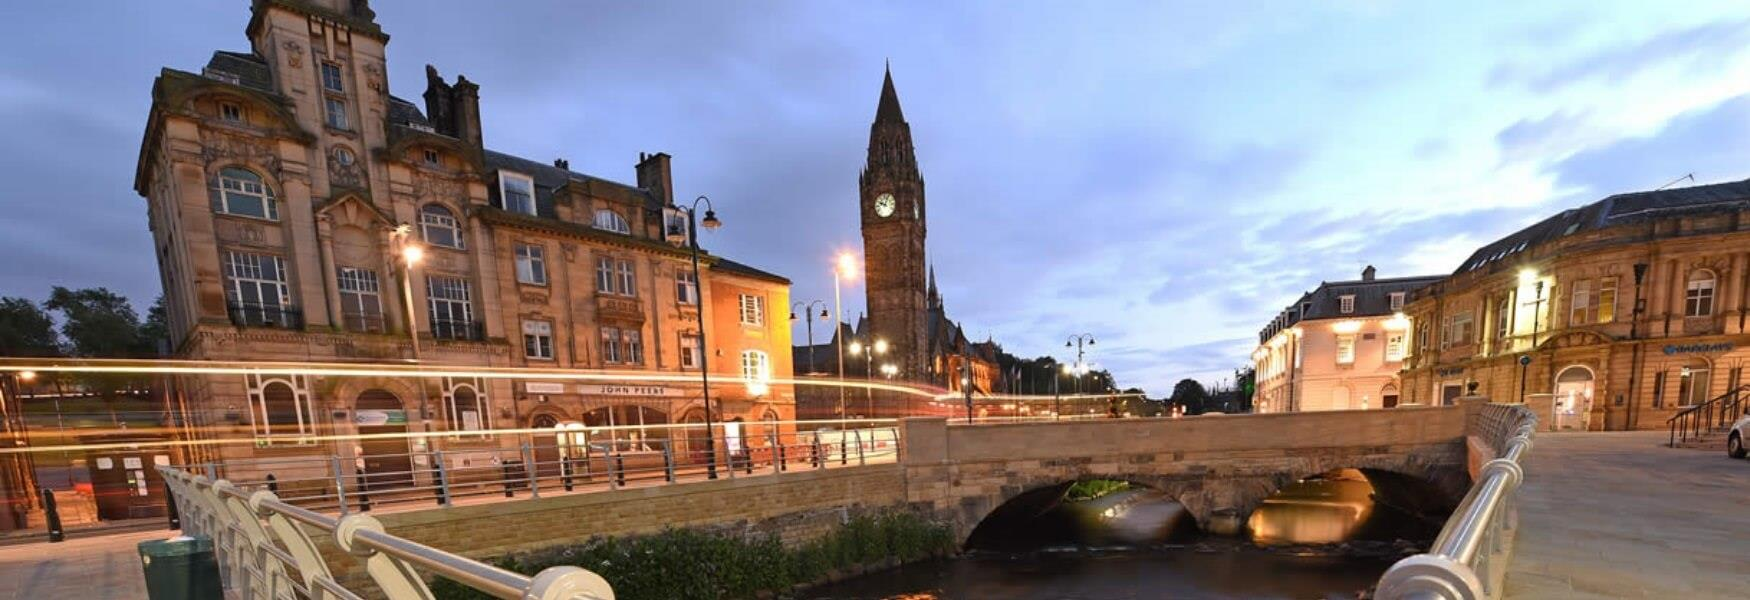 Rochdale town centre at night.